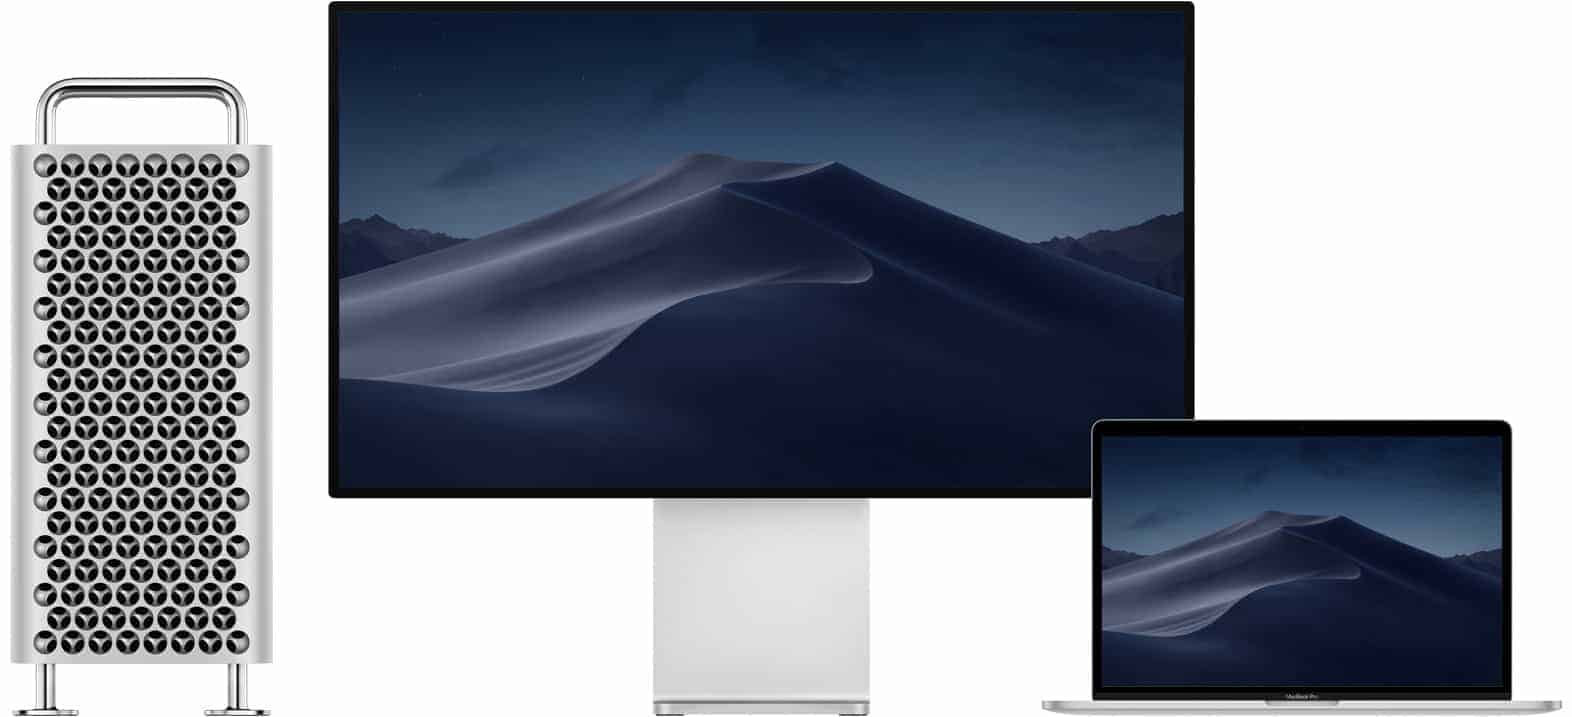 Mac Pro + Pro Display XDR